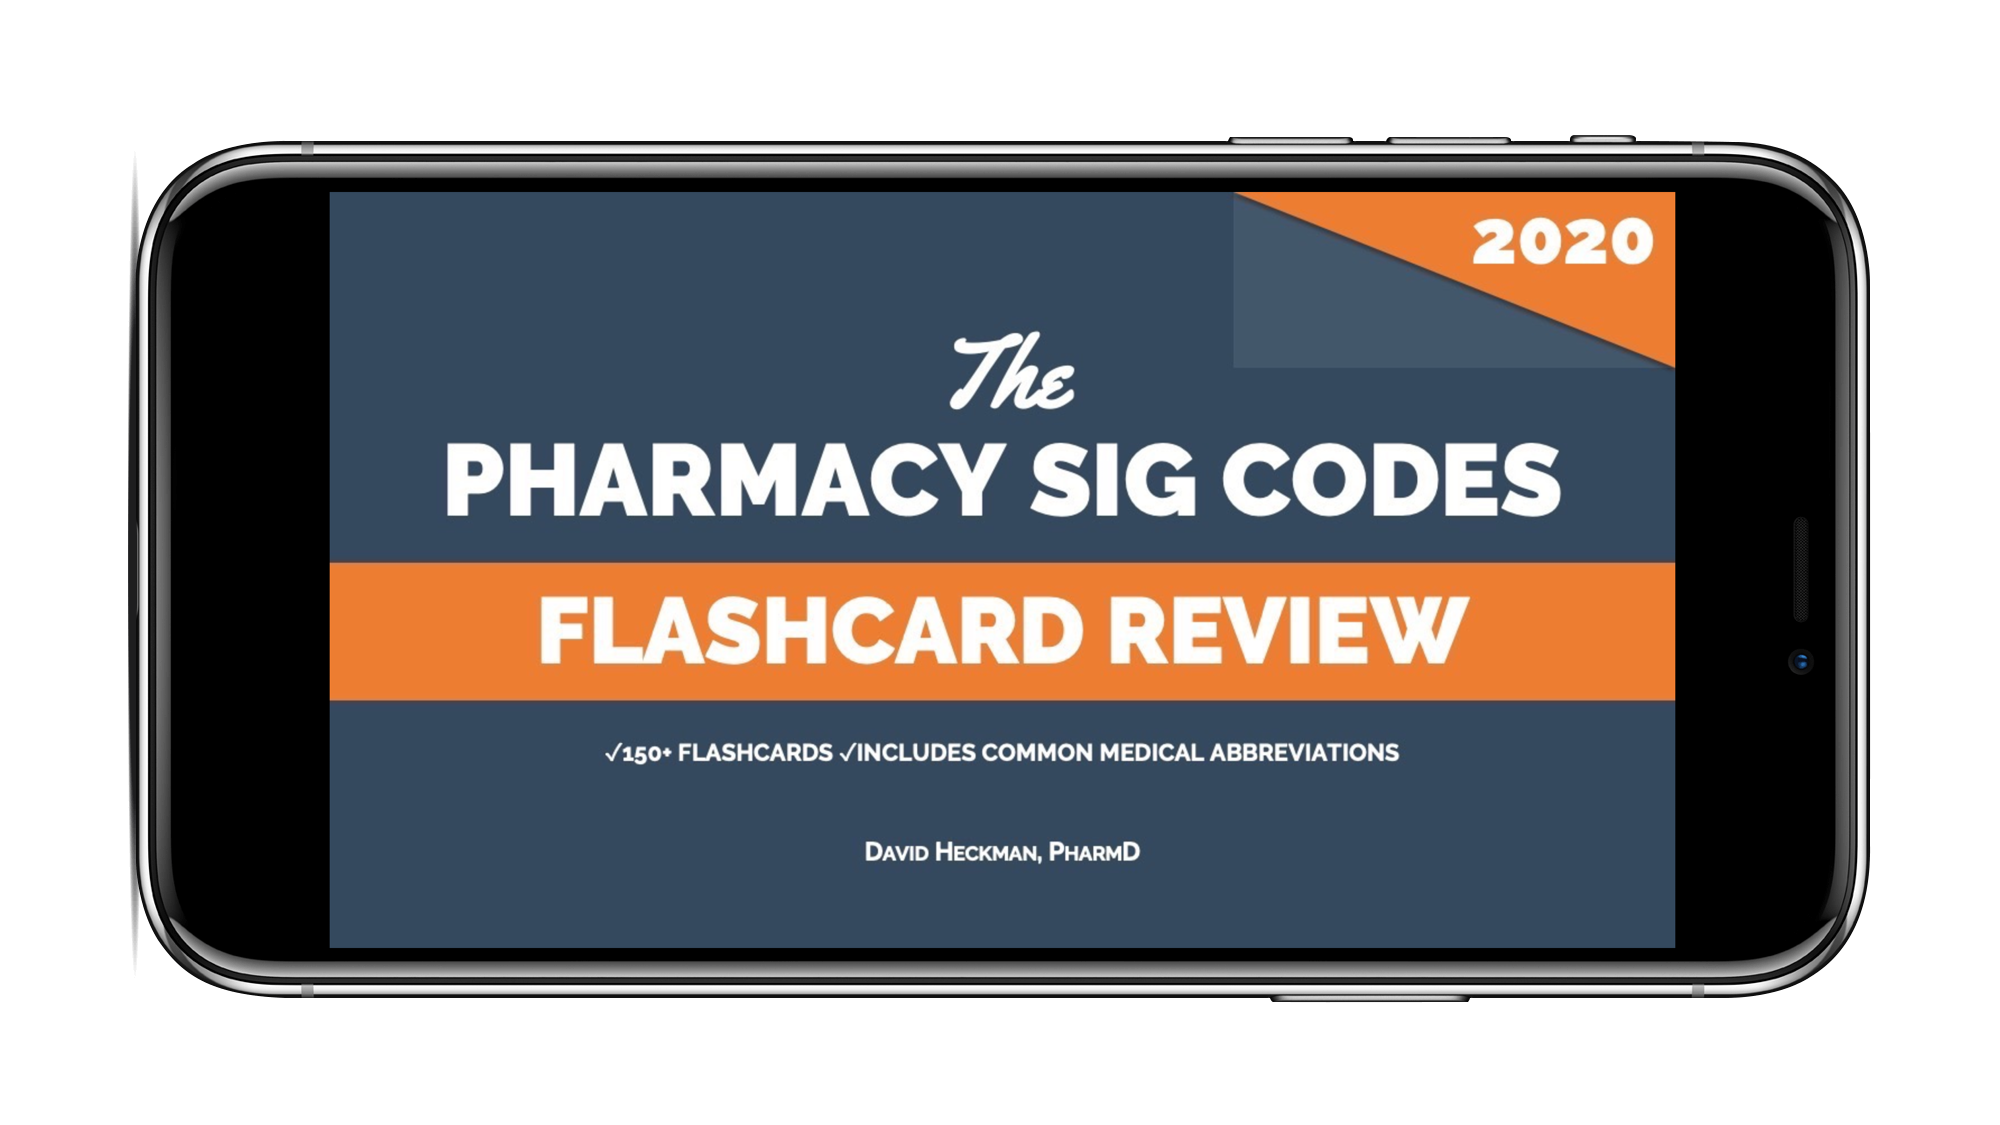 Pharmacy Sig Codes Flashcard Review for 2020